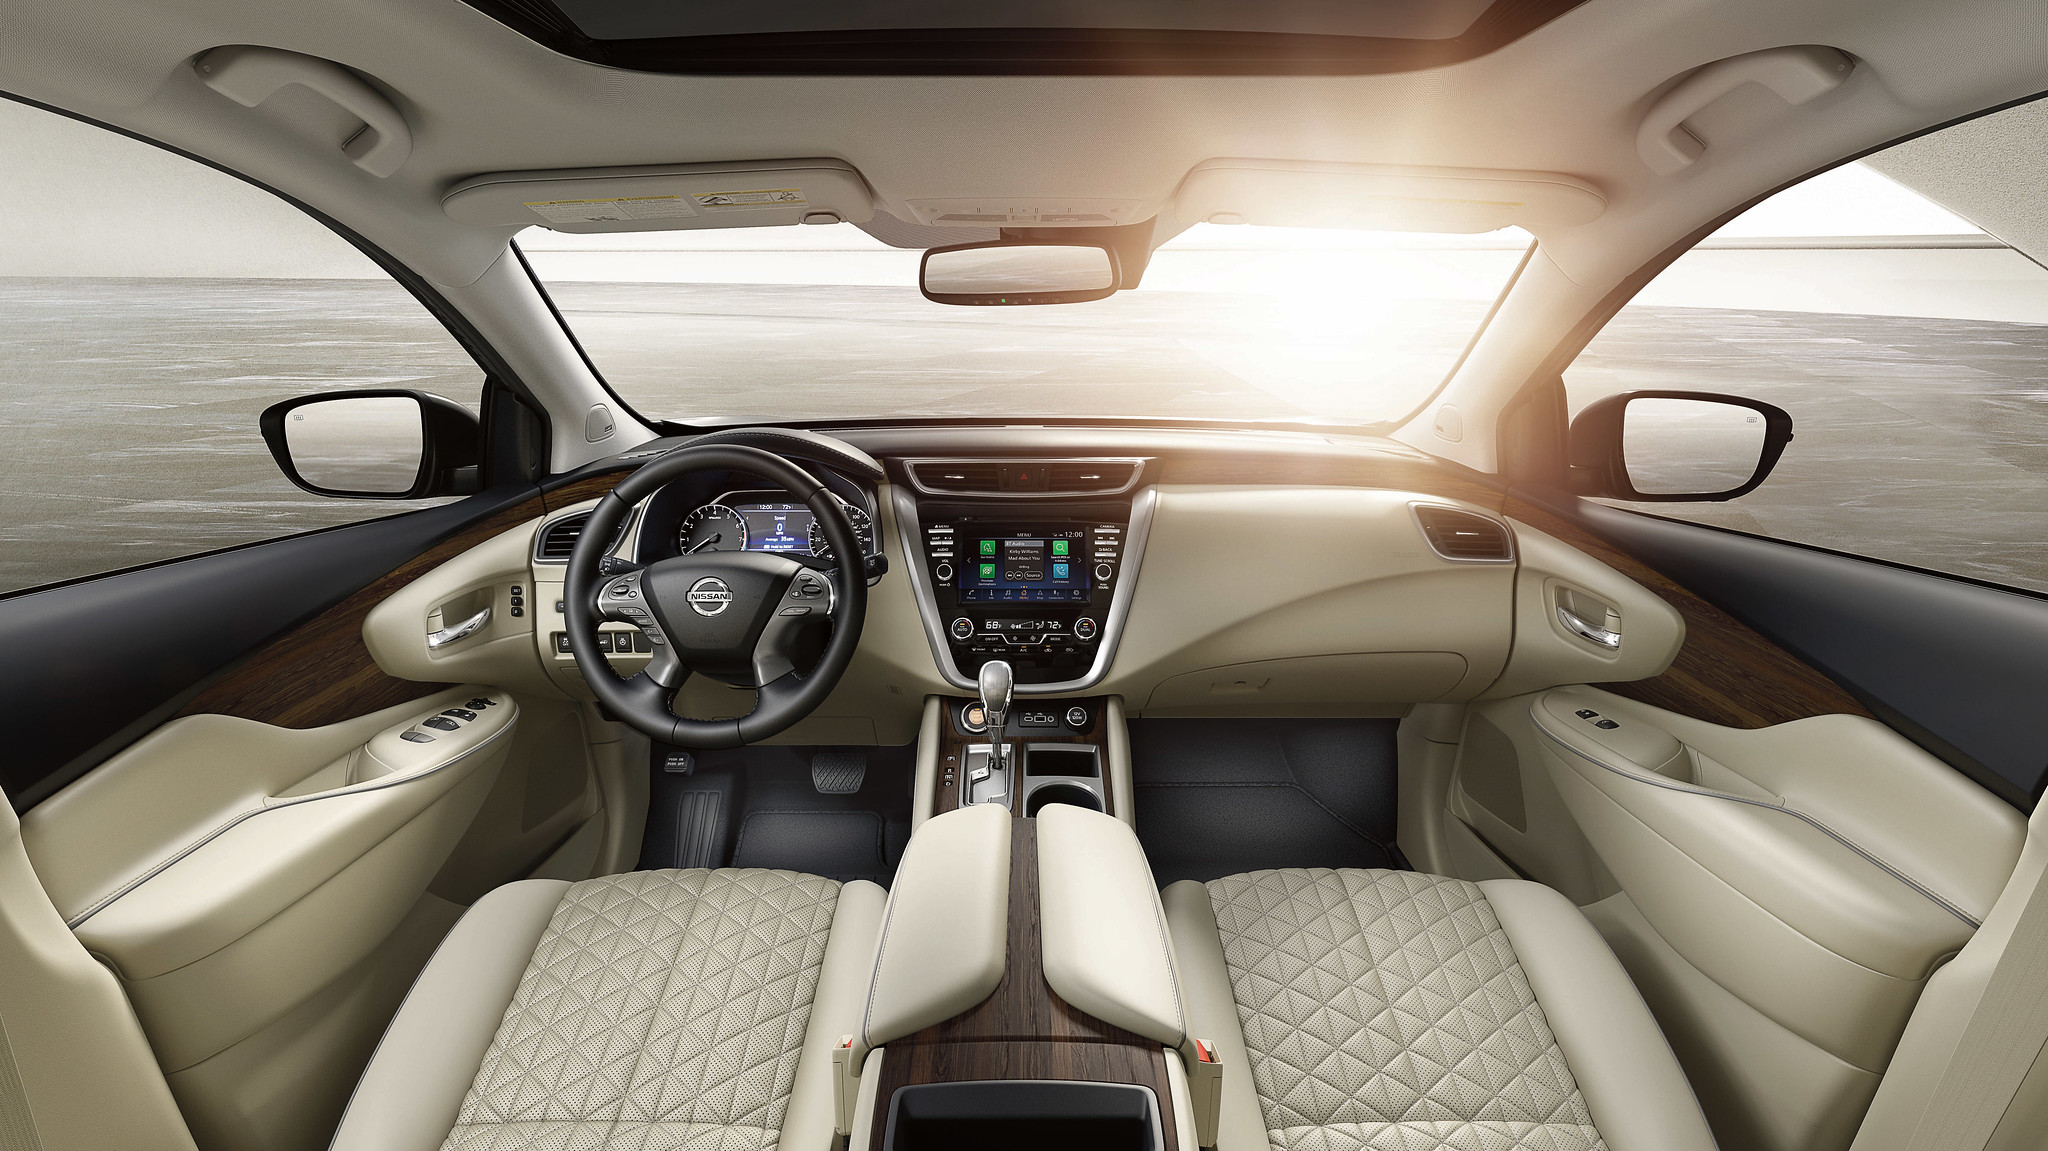 2021 Nissan Murano Overview | Galesburg Nissan | Galesburg, IL